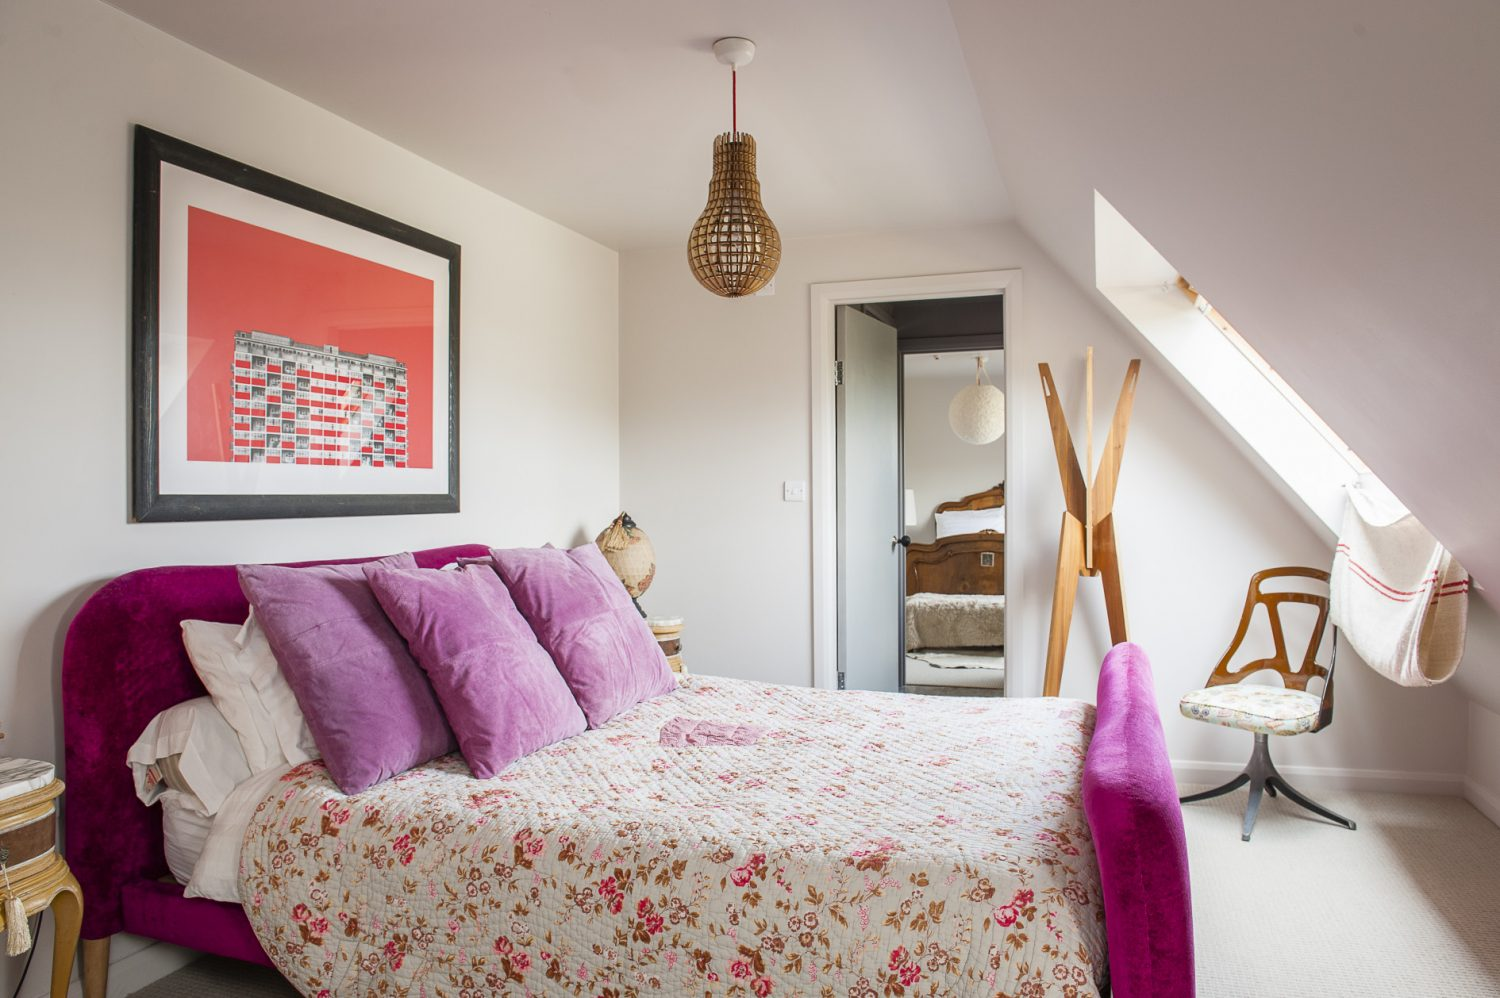 Above the pink velvet bed in the second bedroom is a print of a building in Acton